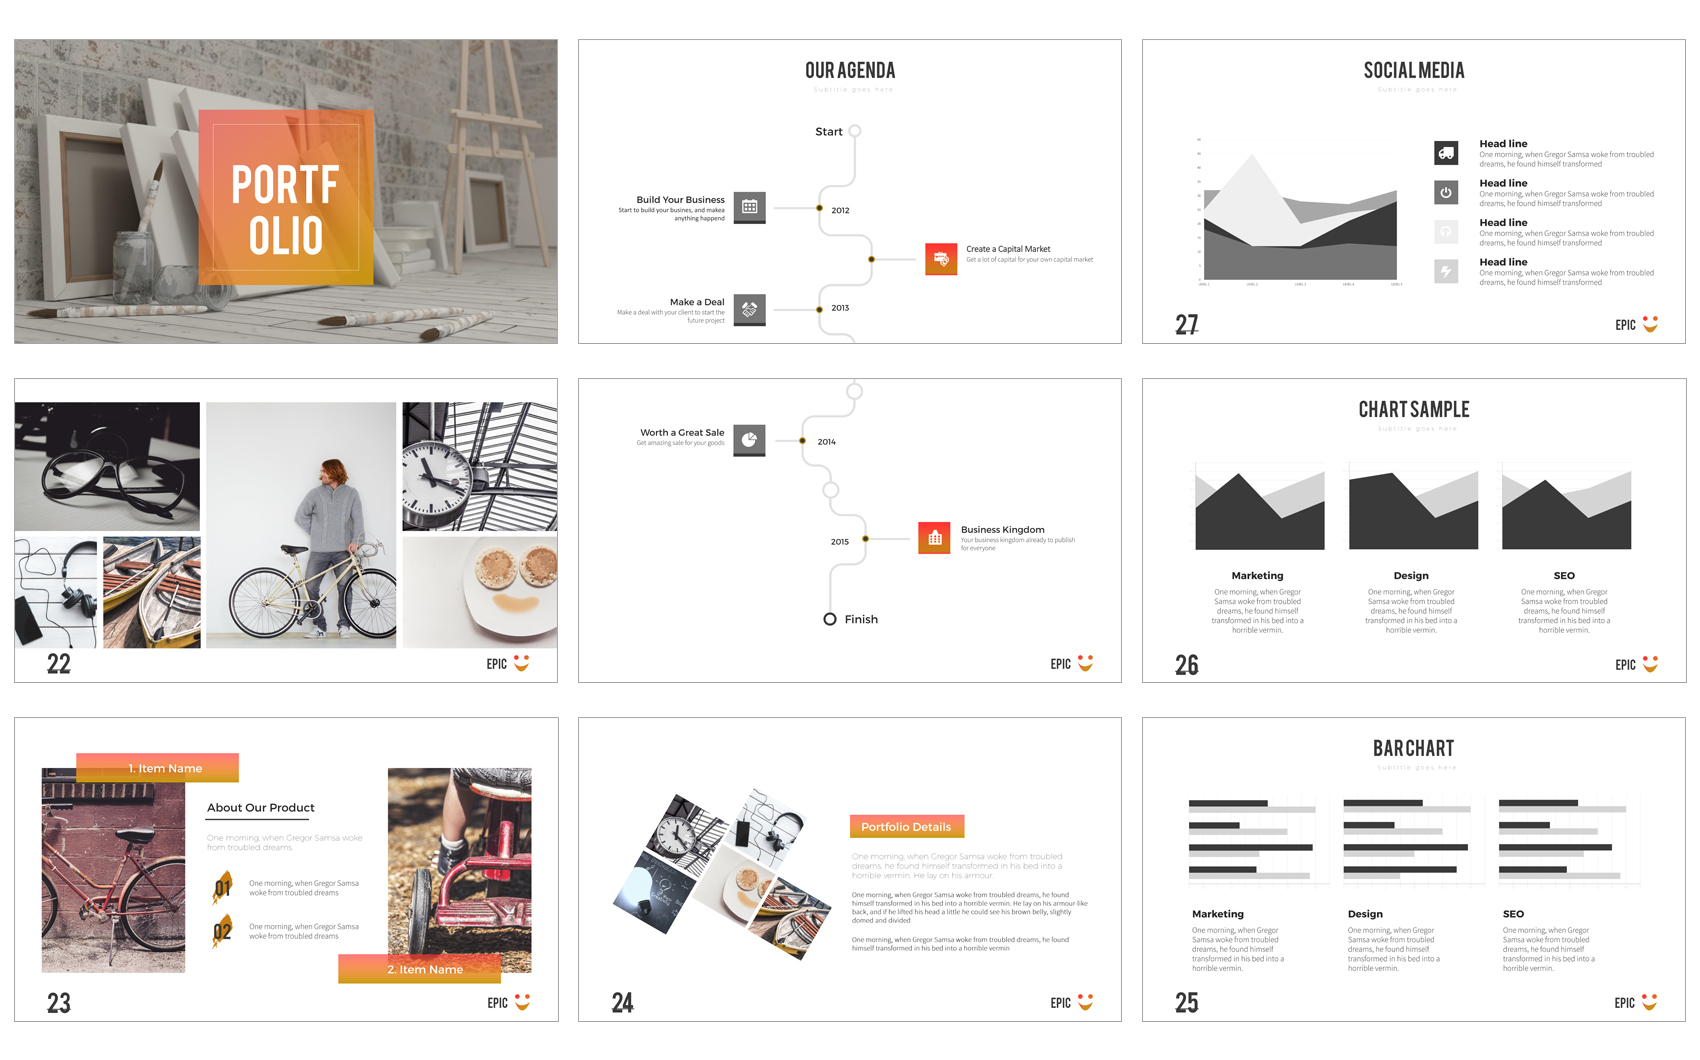 Epic powerpoint presentation powerpoint template 64442 epic powerpoint presentation powerpoint template big screenshot zoom in alramifo Gallery